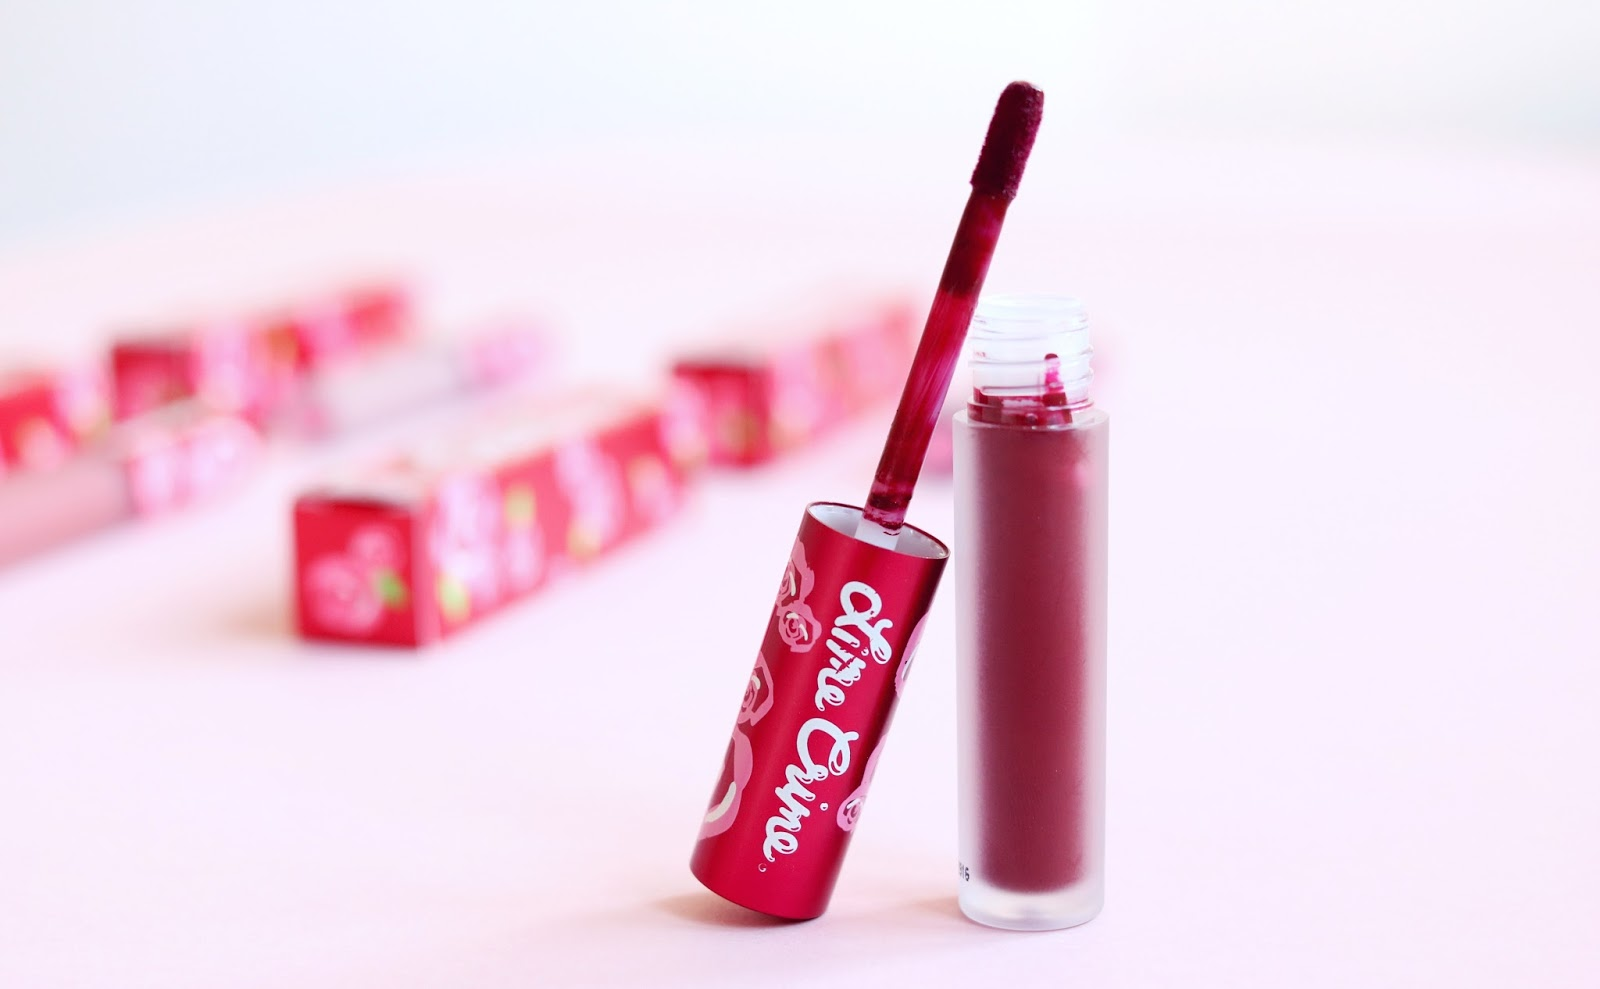 Lime Crime images wallpaper